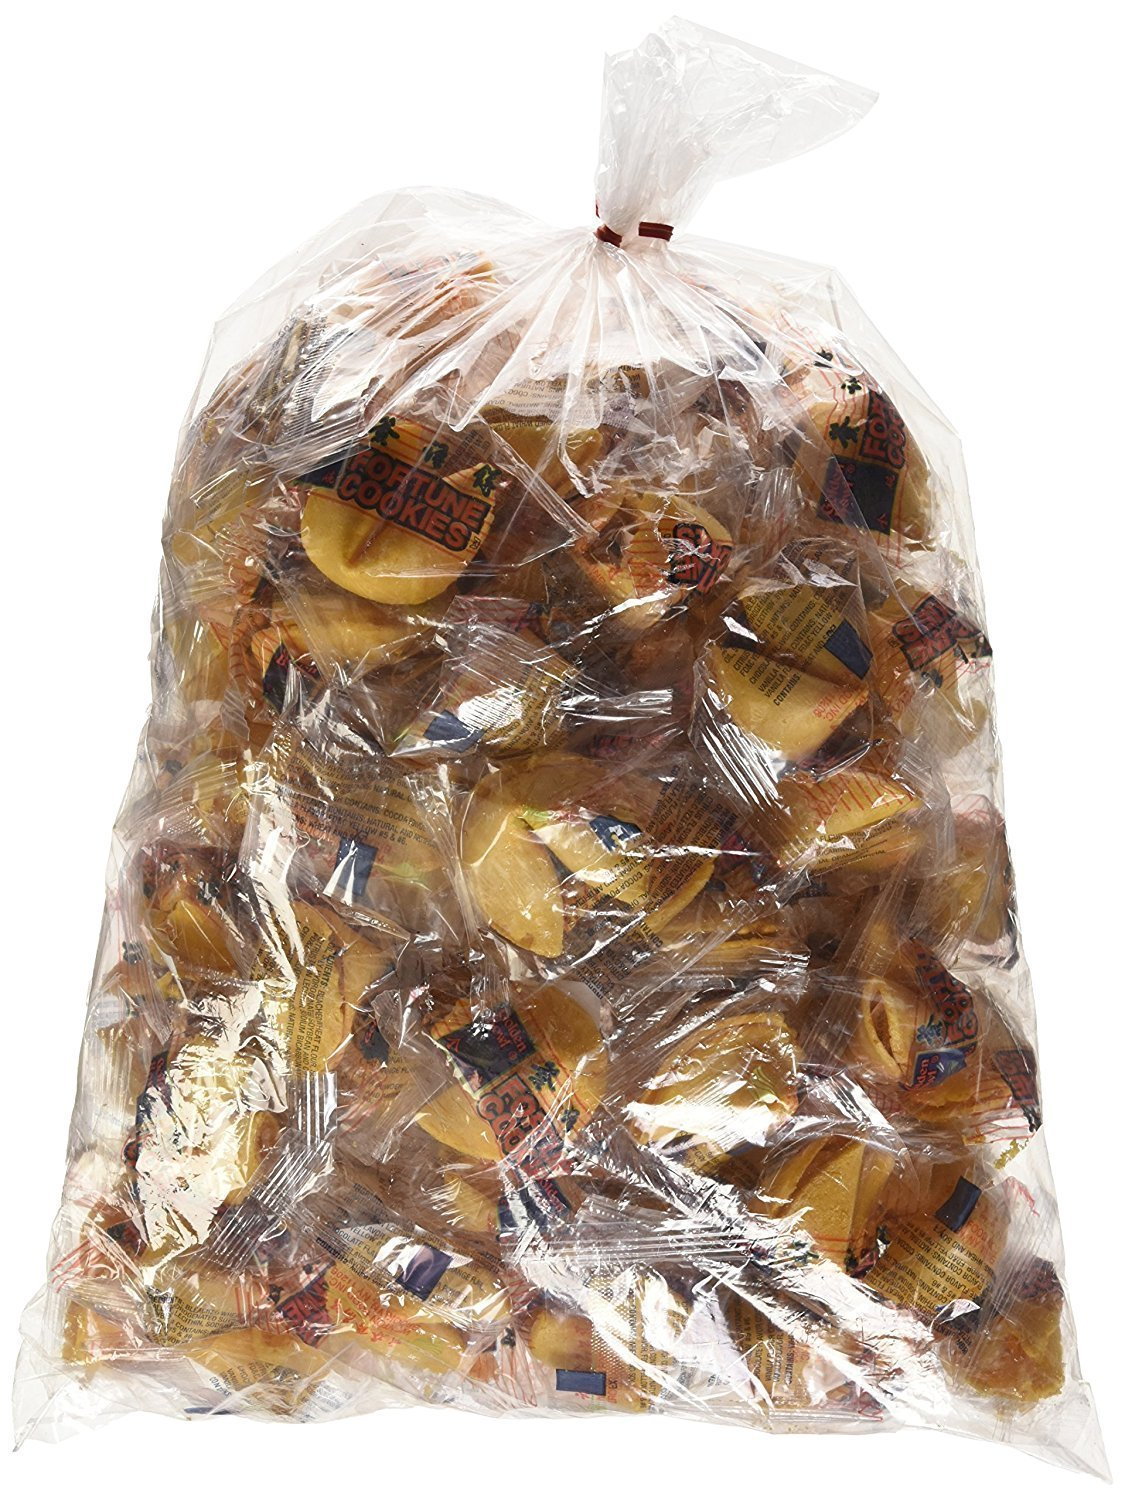 2.5 Pound Super Size Bag of Fortune Cookies - 40 ounces of Fortune Cookie Goodness by Fortune Cookies